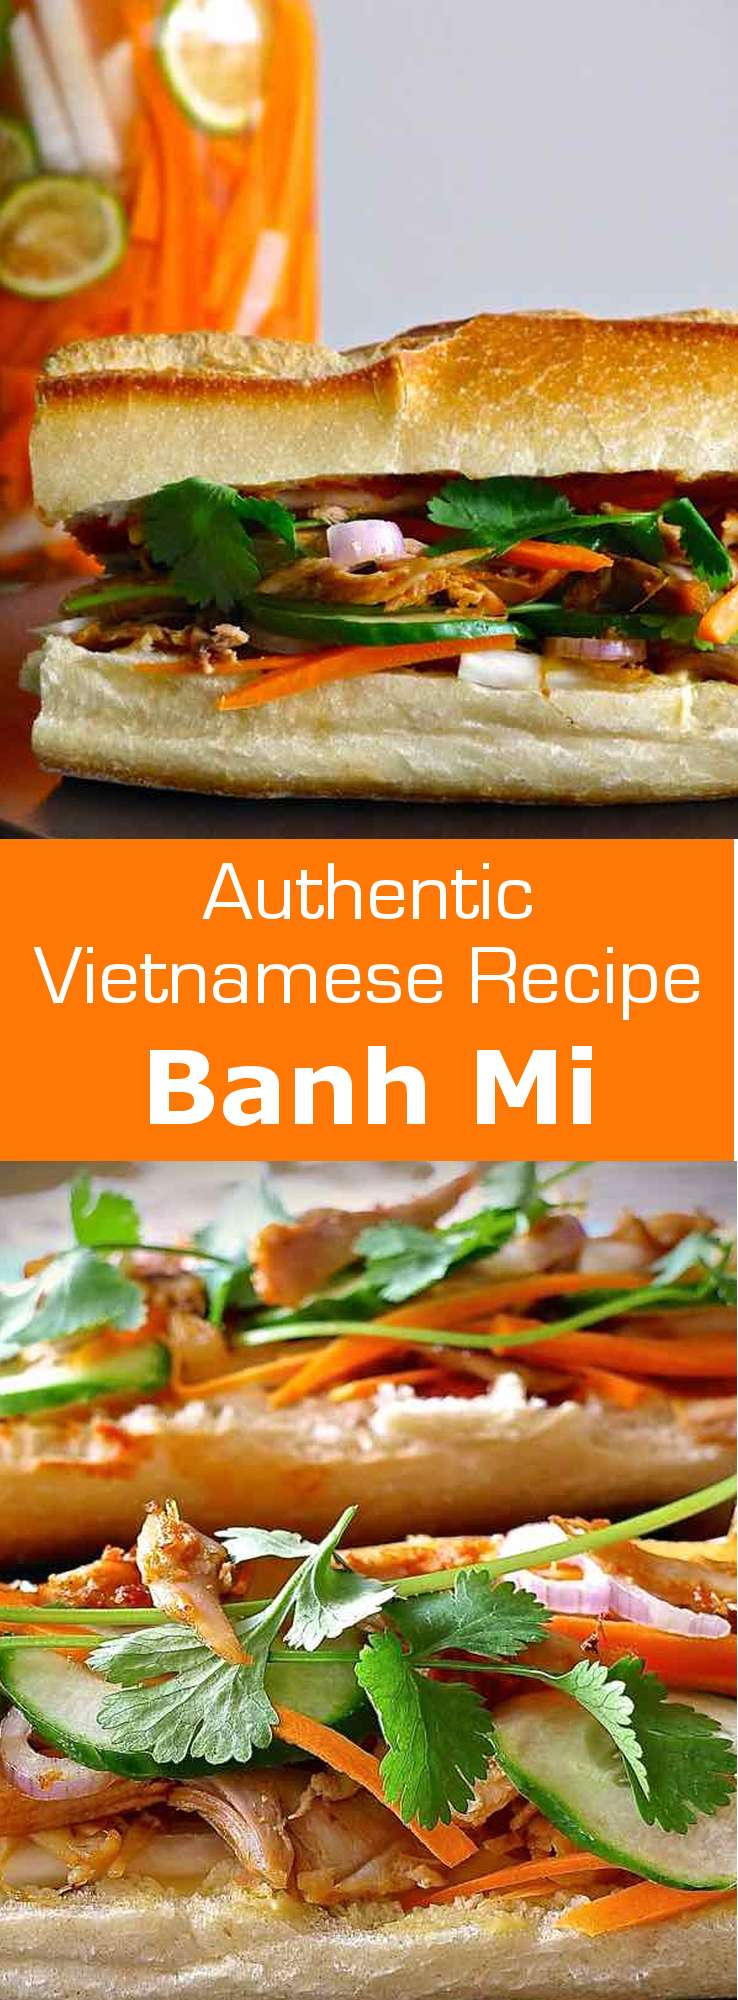 Vietnamese banh mi consists of a loaf of crispy bread, sweet and sour pickled vegetables and roast meat, garnished with fresh cilantro and chili. #Vietnam #sandwich #196flavors